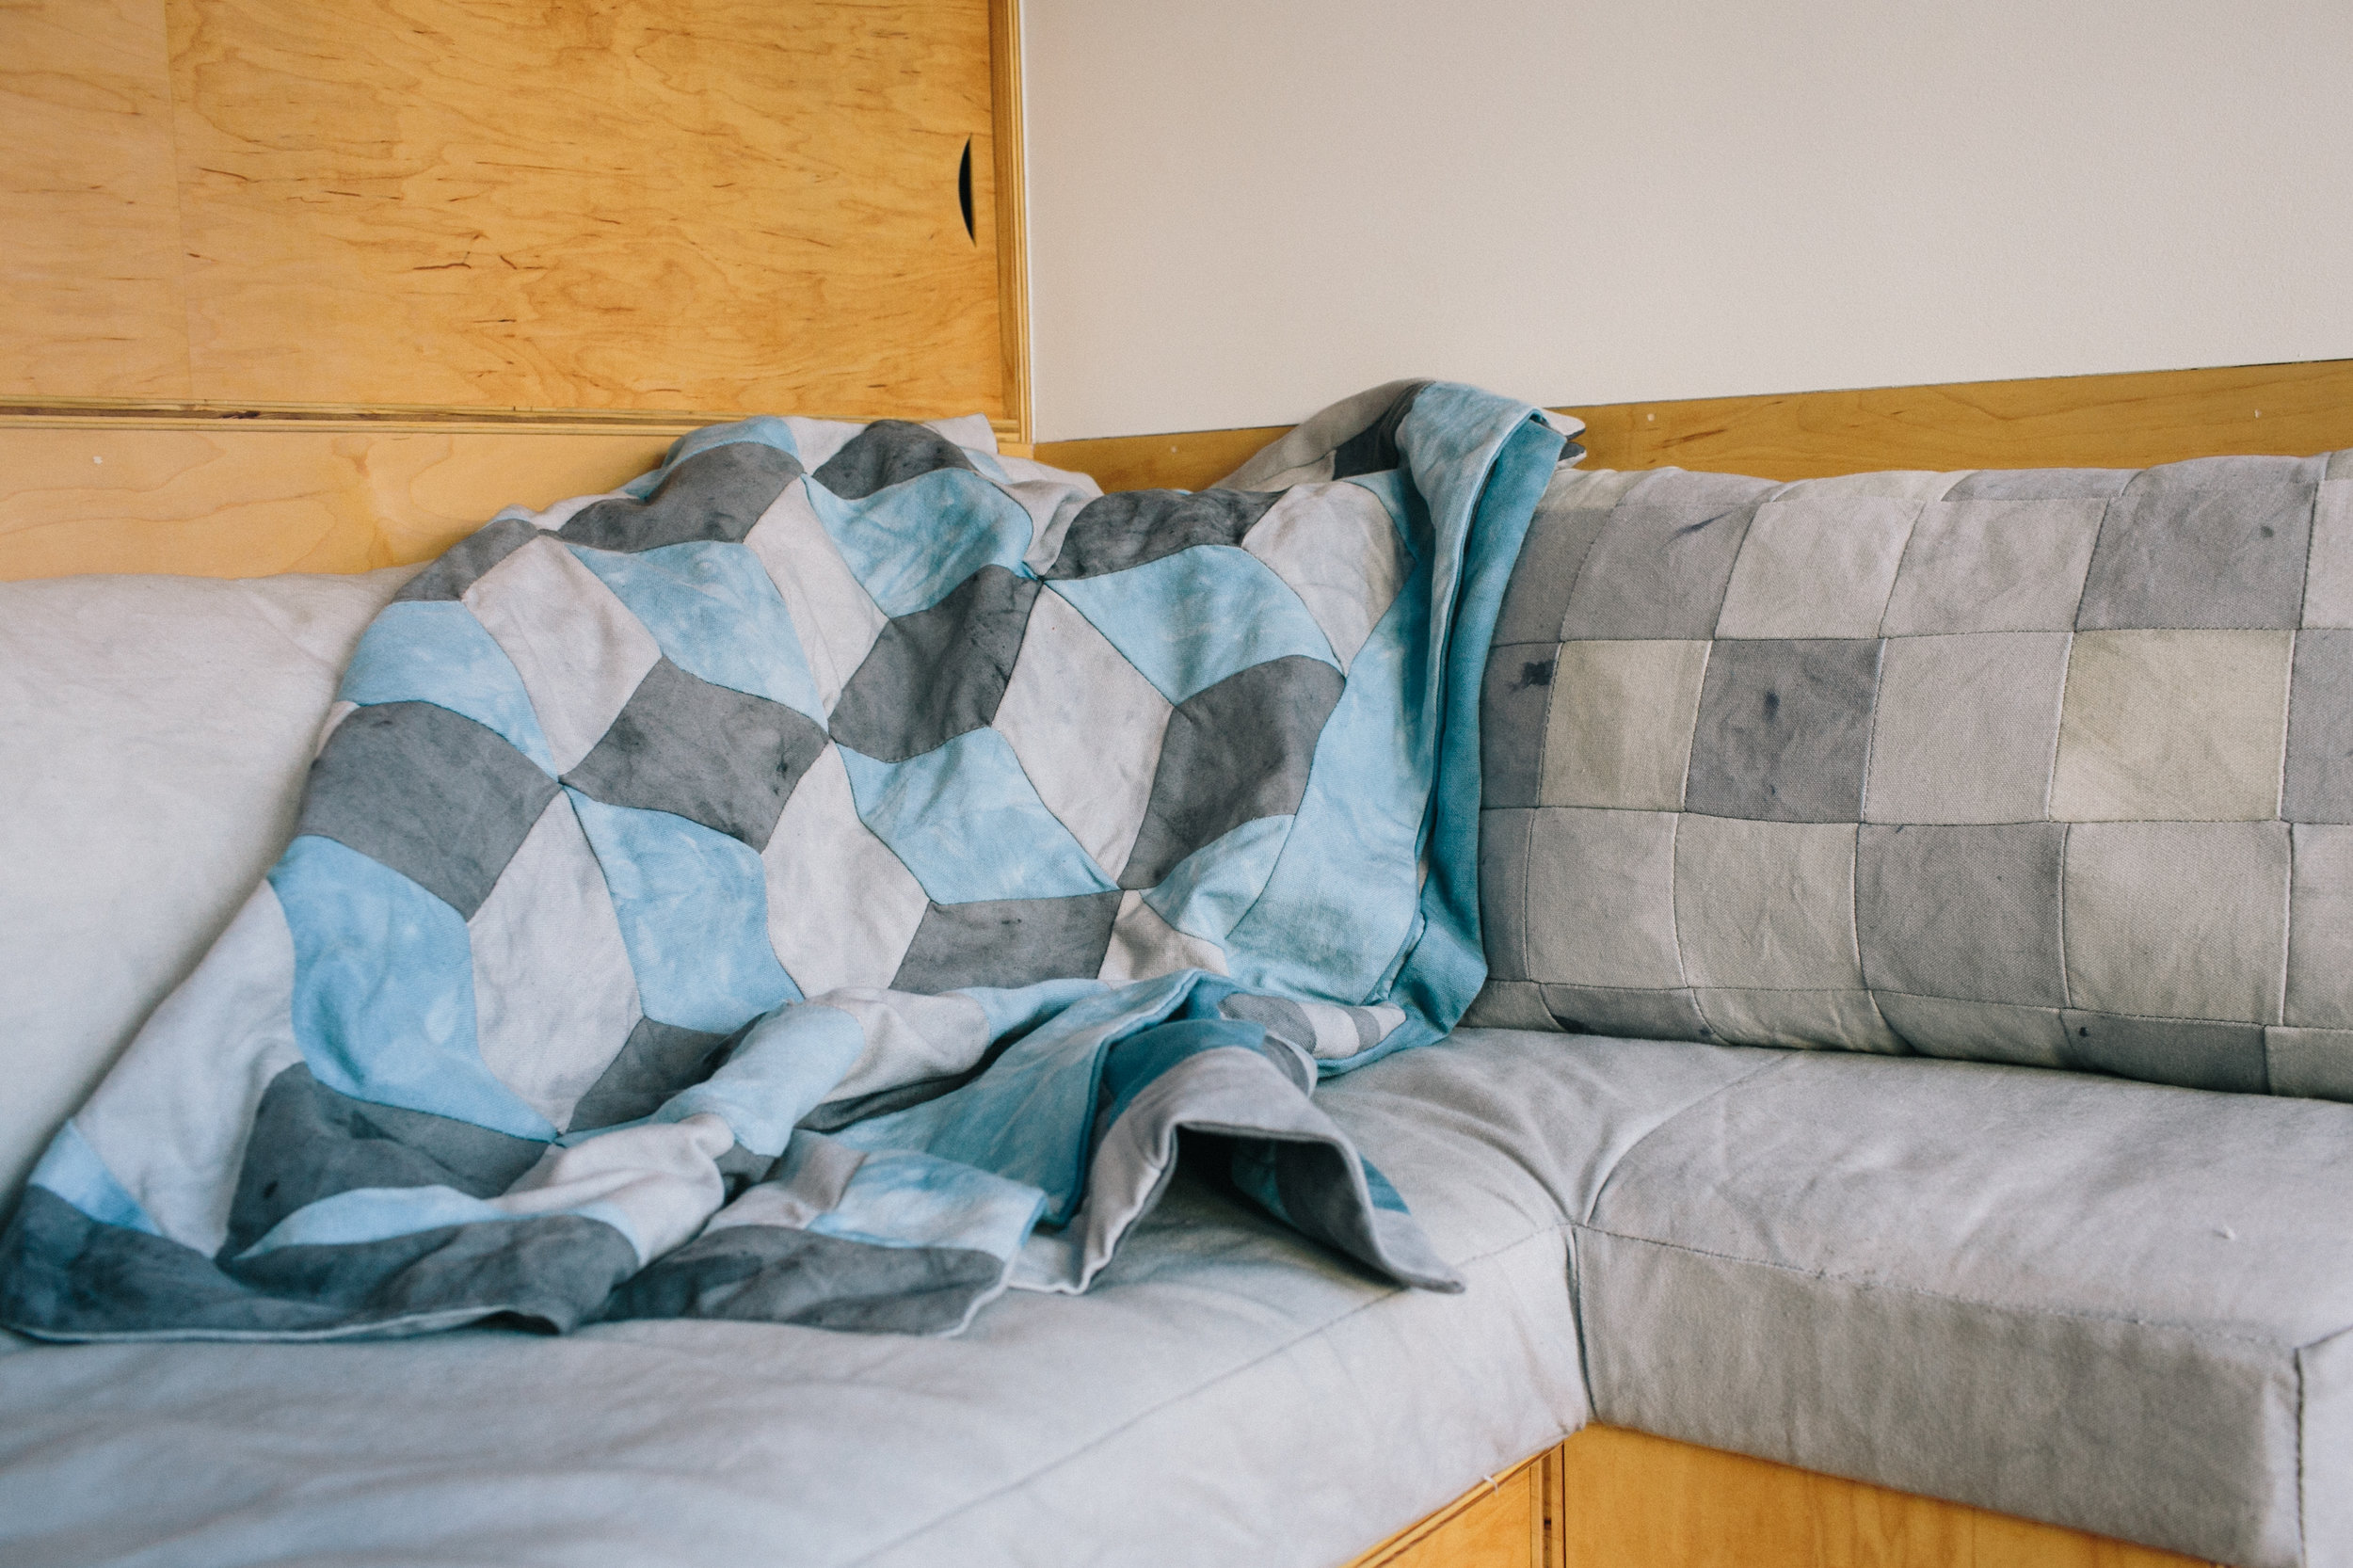 Tumbling Blocks Quilt - Oak Galls & Iron and Indigo Dye on Canvas Pillow - Oak Galls & Iron on Canvas